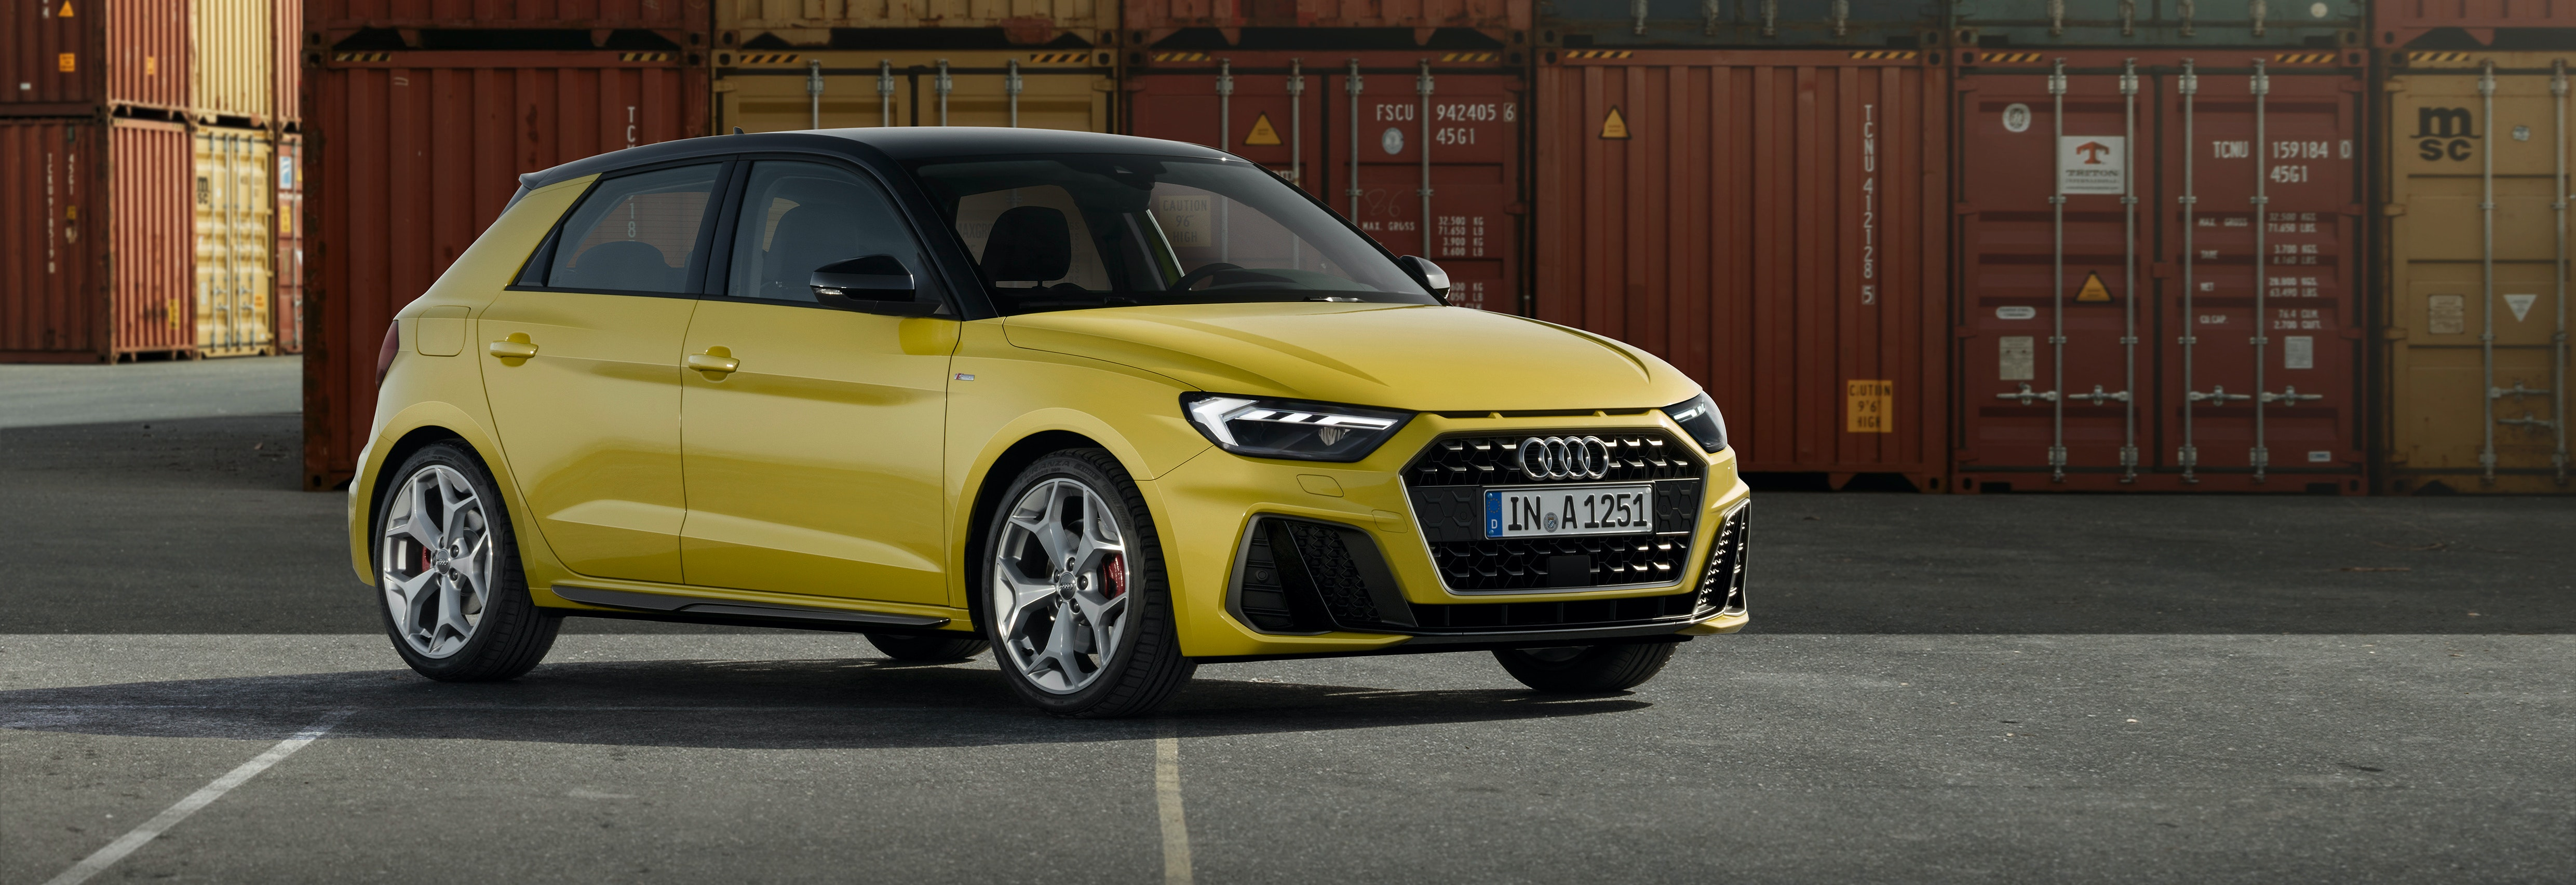 Audi A1 2019 Price Specs And Release Date Carwow